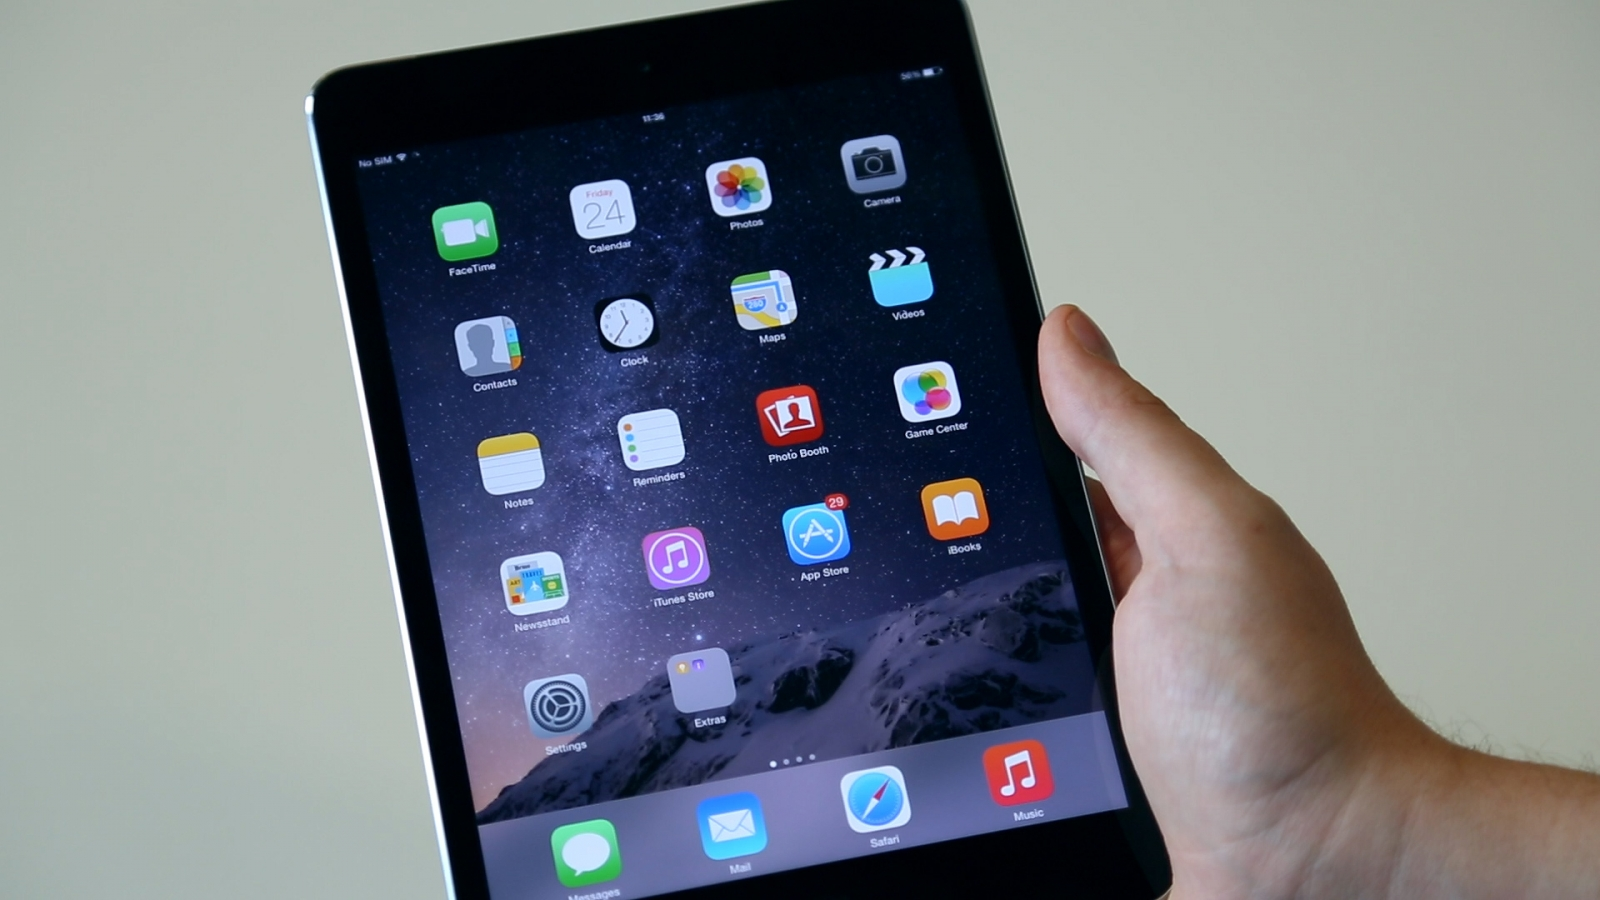 ipad mini 3 64gb review